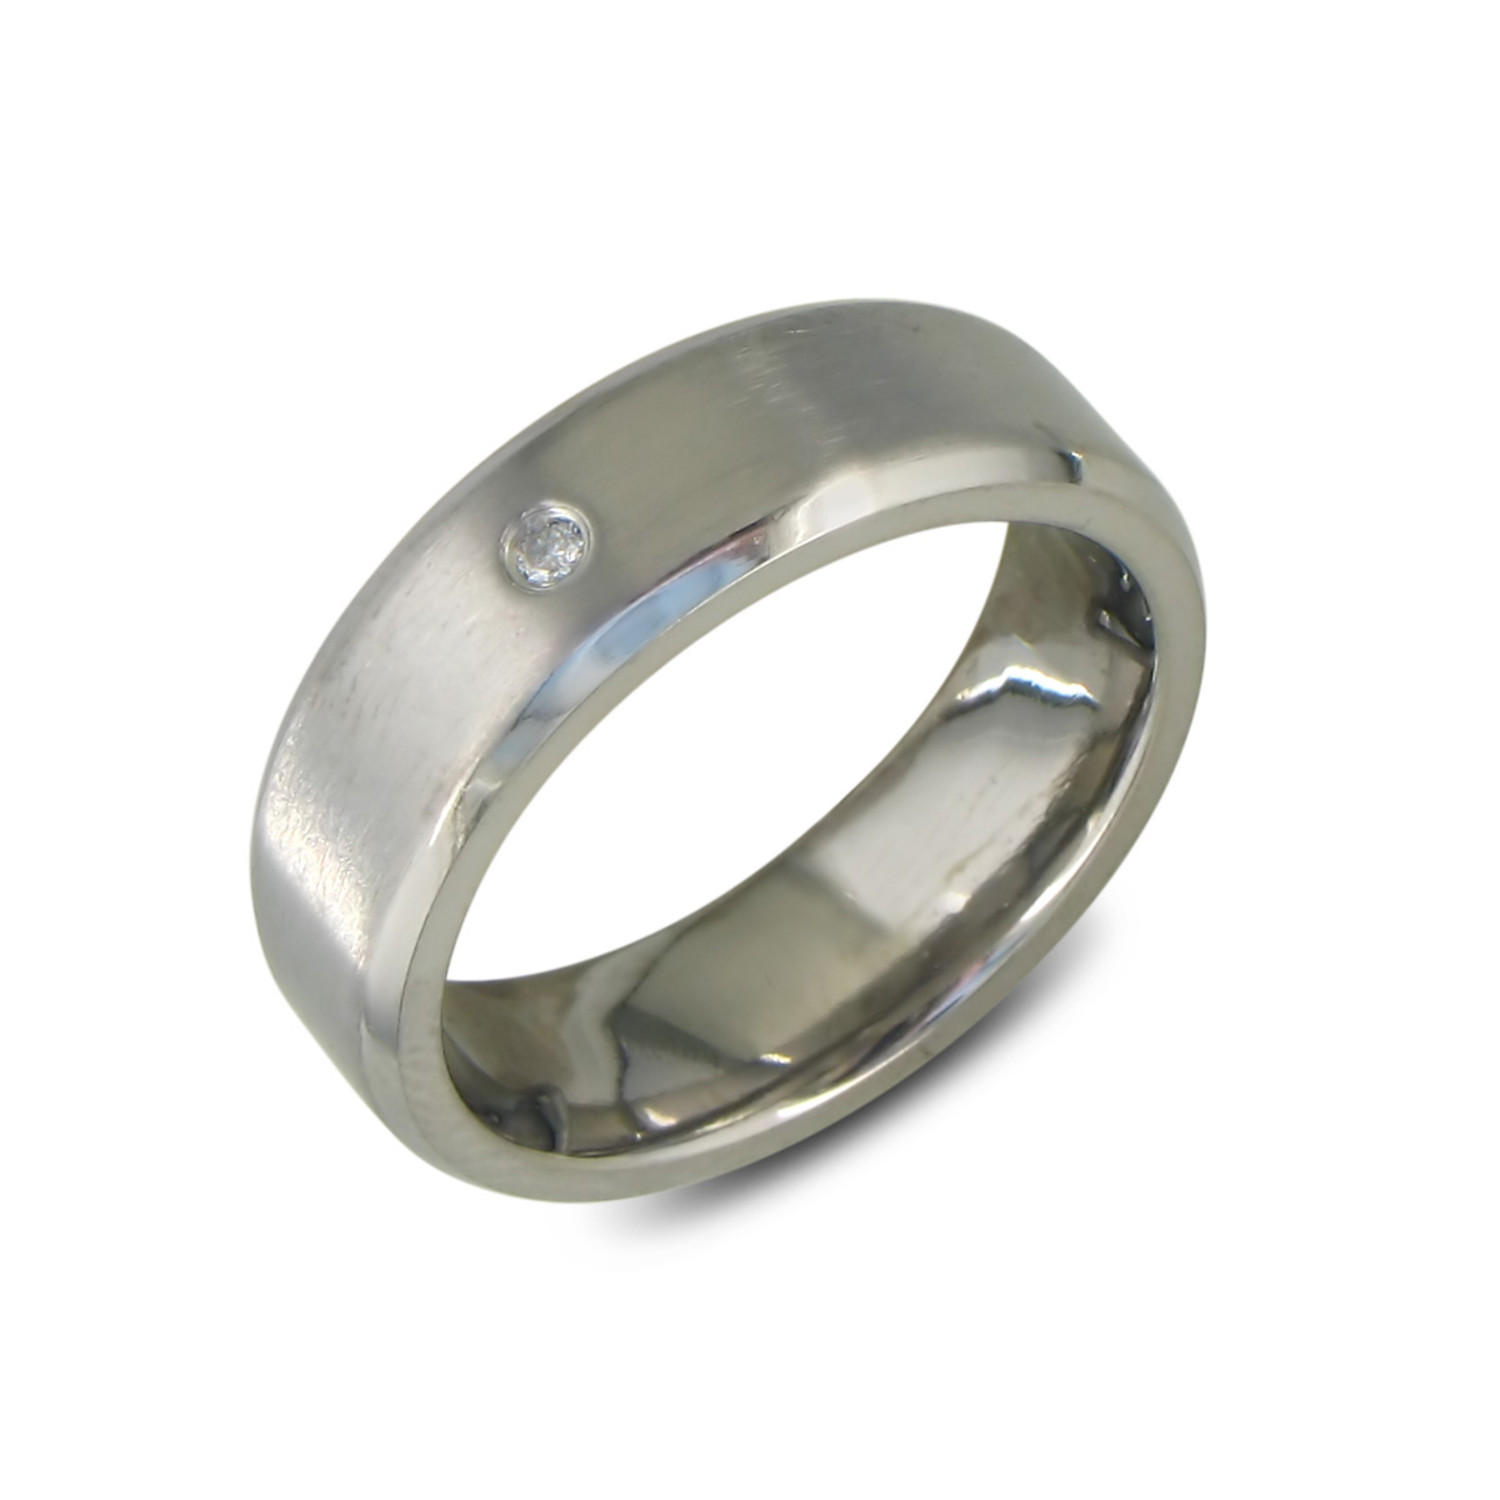 Modern Titanium Wedding Band 1 Diamond Size 8 5 Octavius